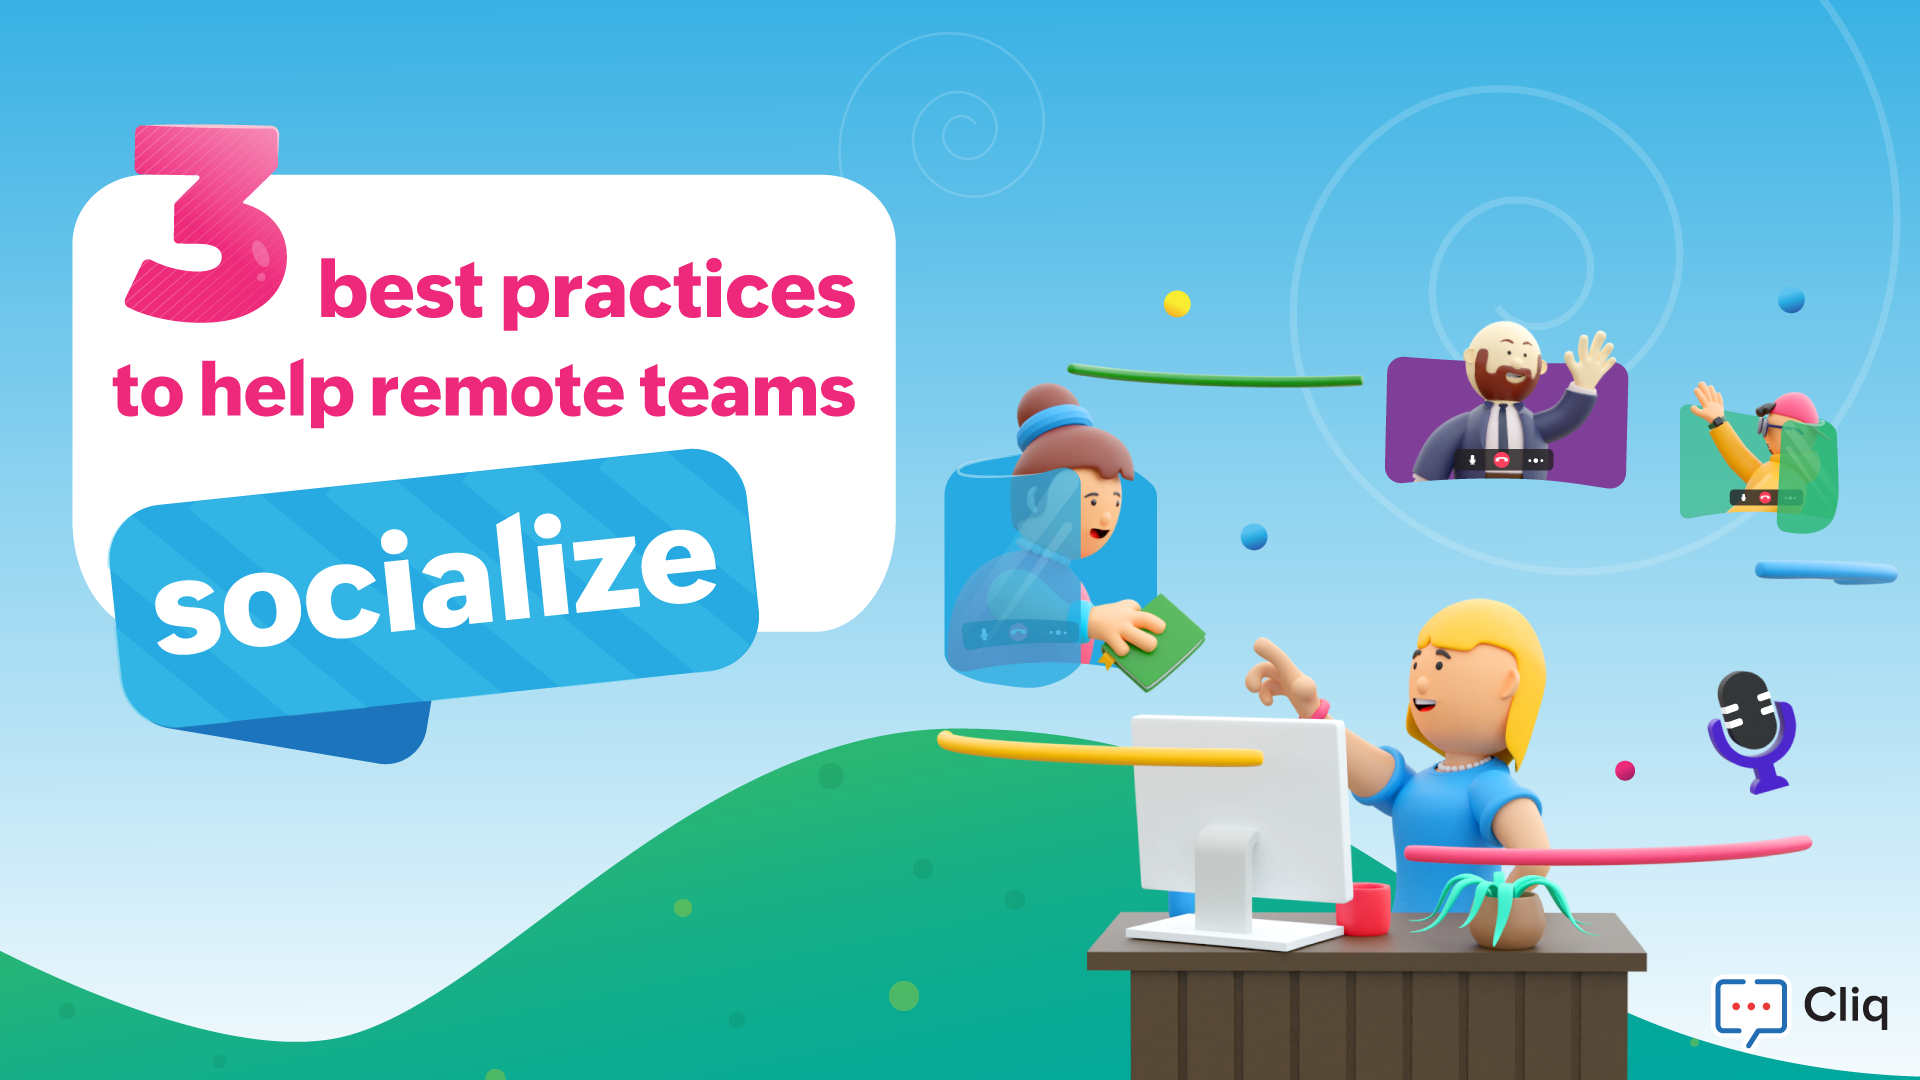 3 best practices to help remote teams socialize